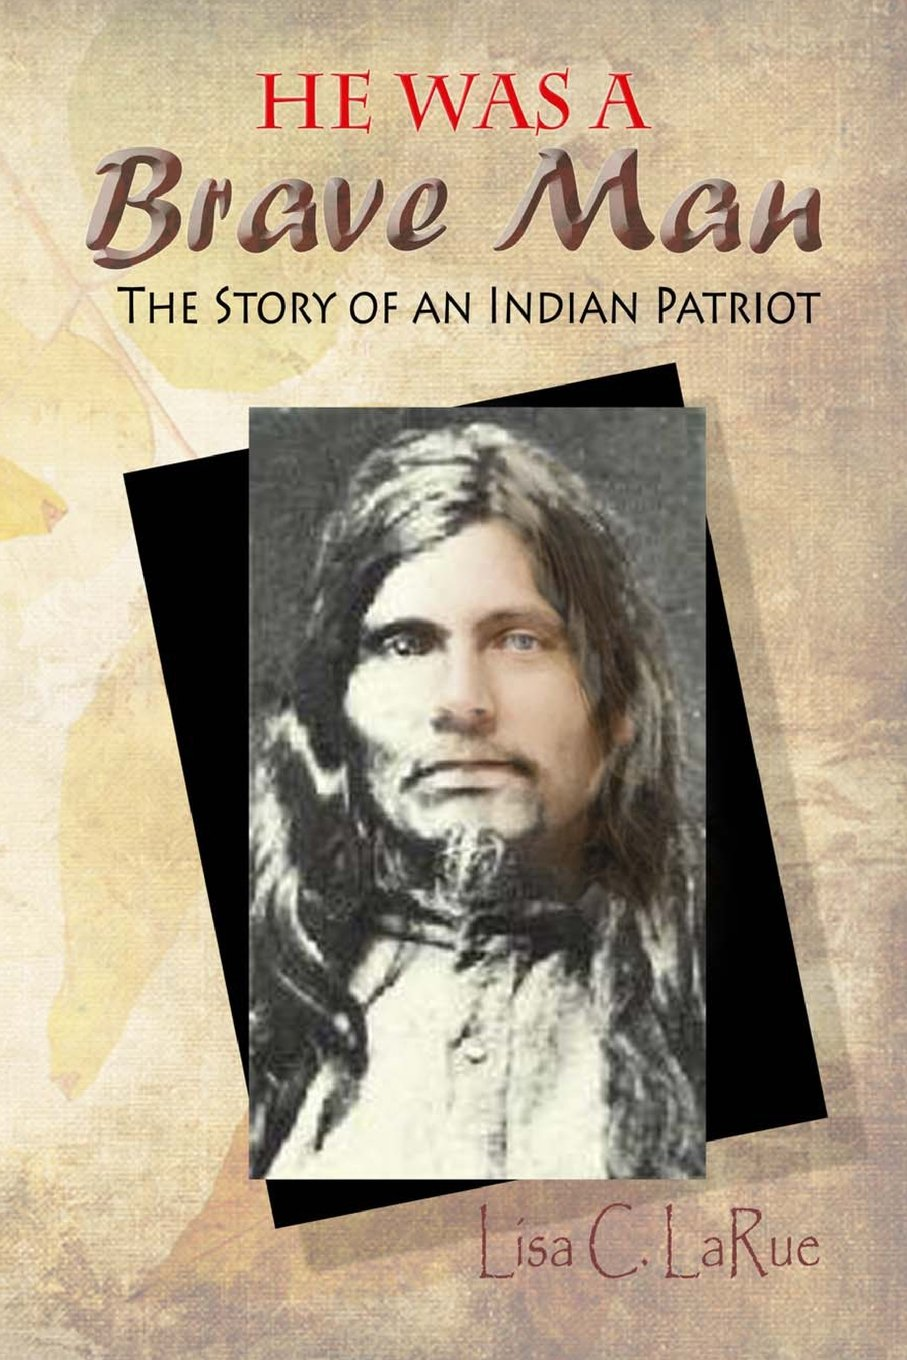 He Was a Brave Man: The Story of an Indian Patriot